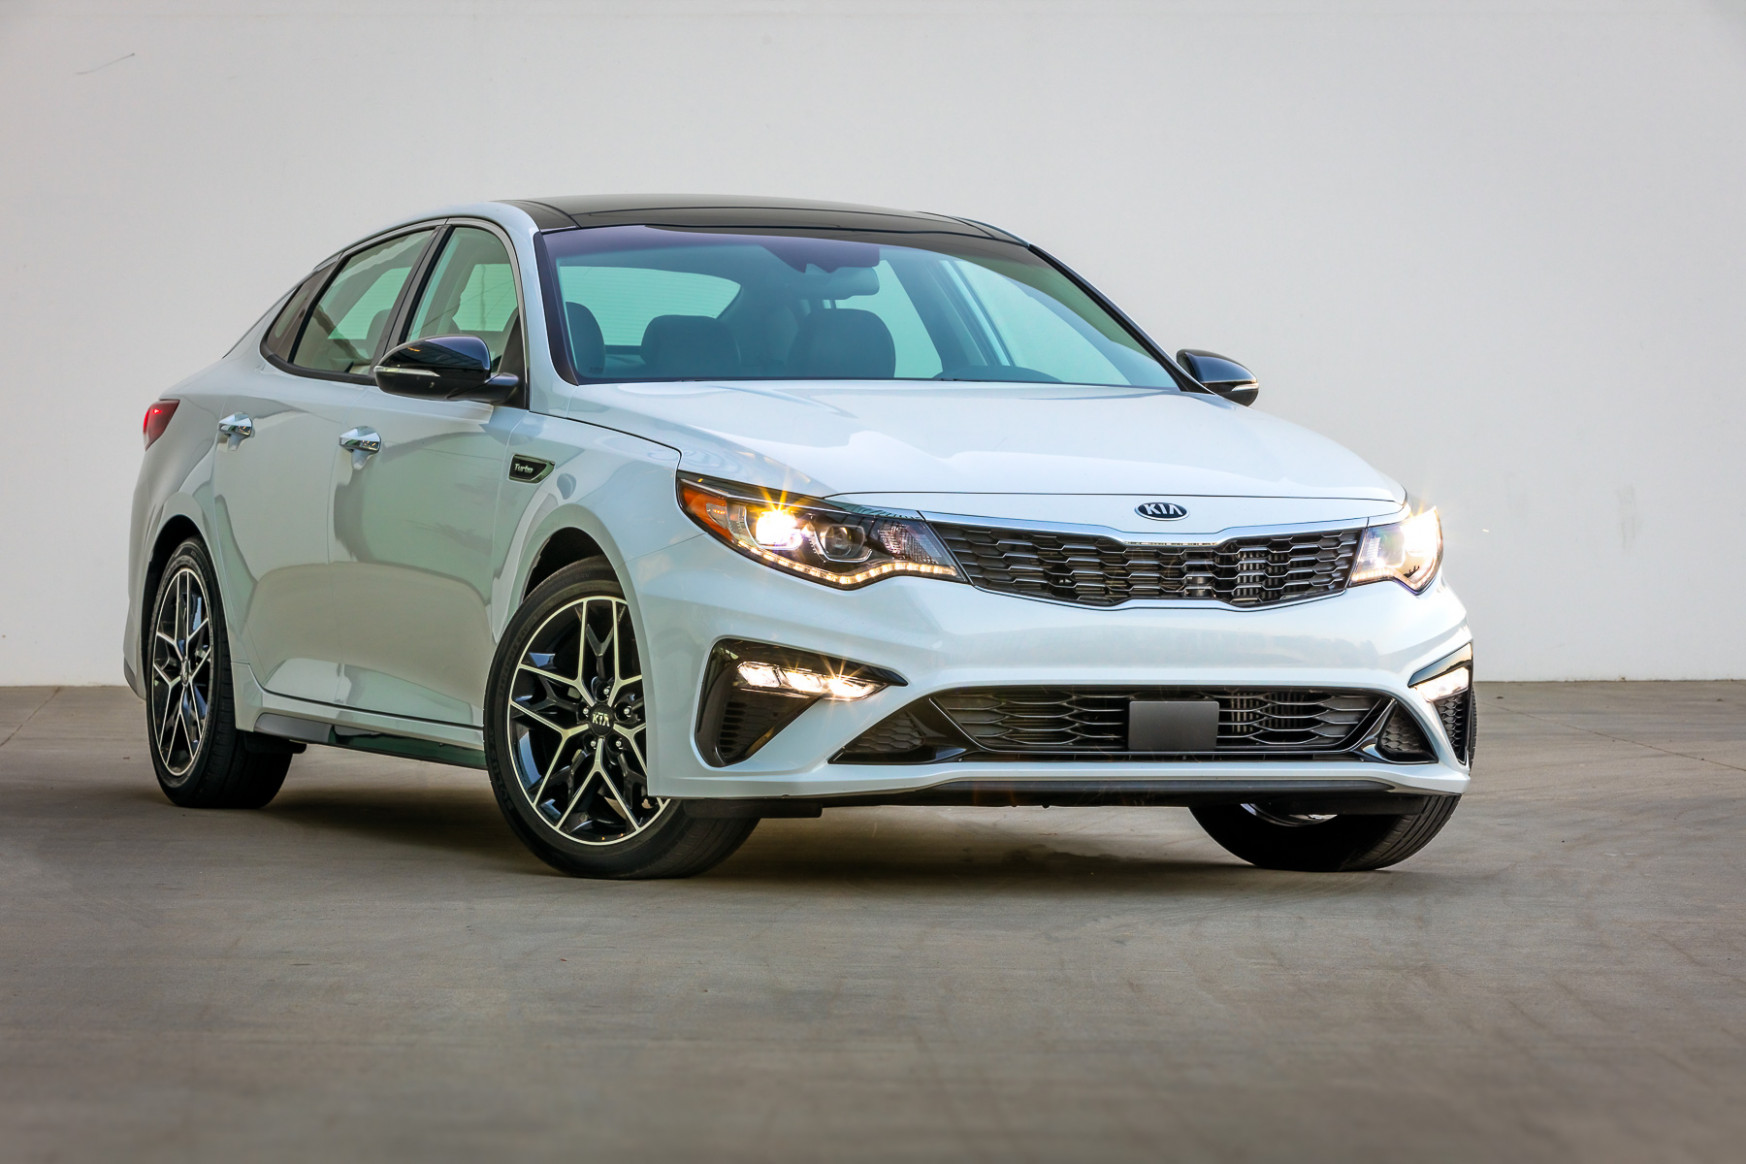 8 Kia Optima Review, Ratings, Specs, Prices, and Photos - The ...